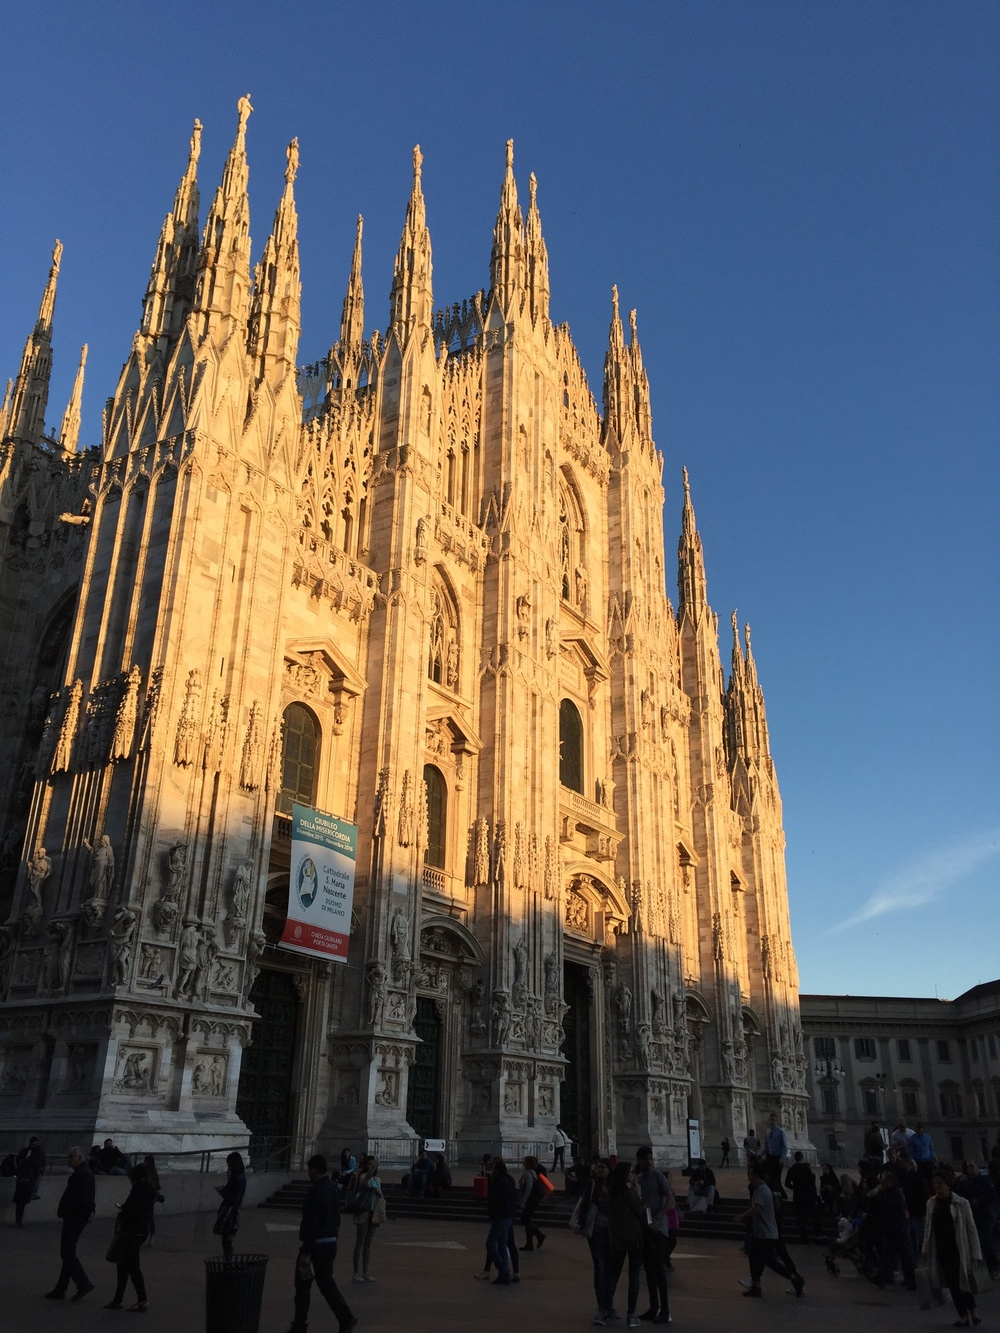 Milan has a magnificent cathedral, the  Duomo